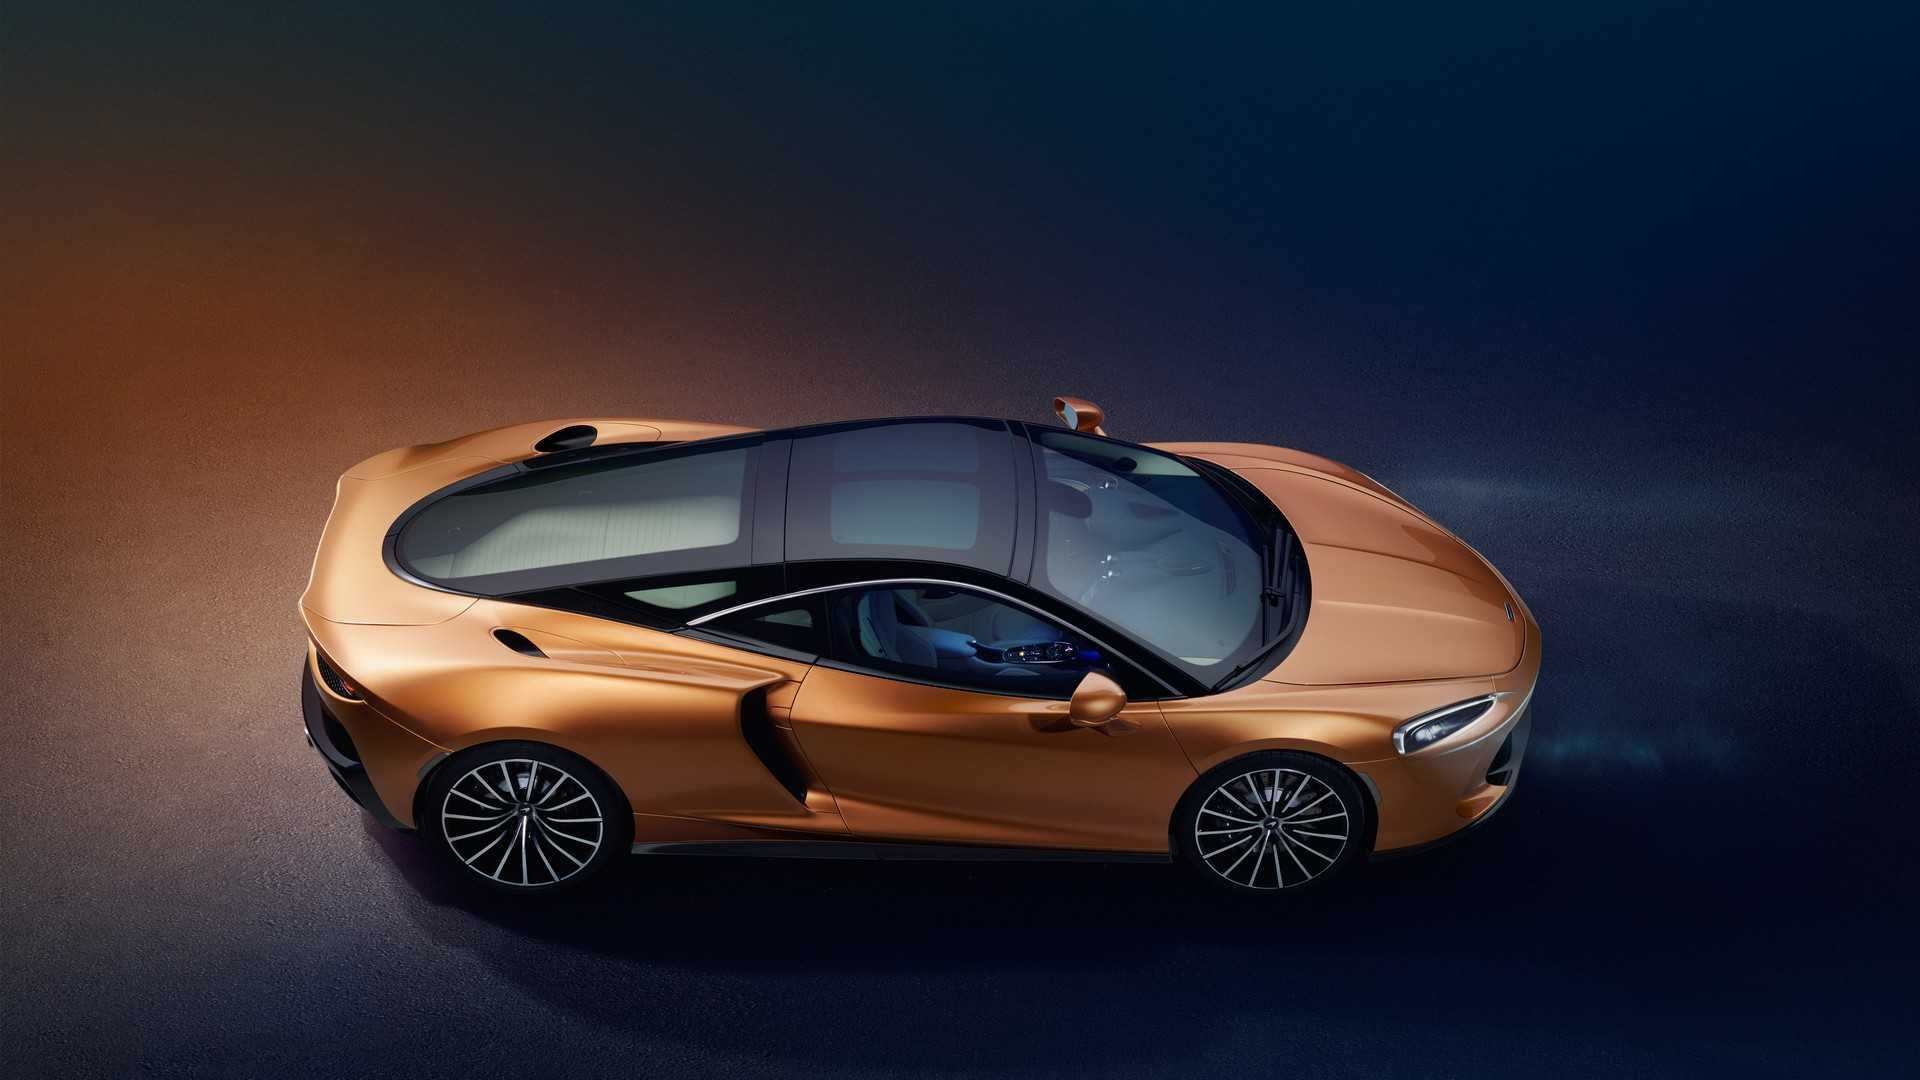 The New Mclaren Gt Is The Most Comfortable And Practical Mclaren Supercar A Super Fast Daily Driver That Can Be Used Fo Super Cars New Mclaren New Luxury Cars